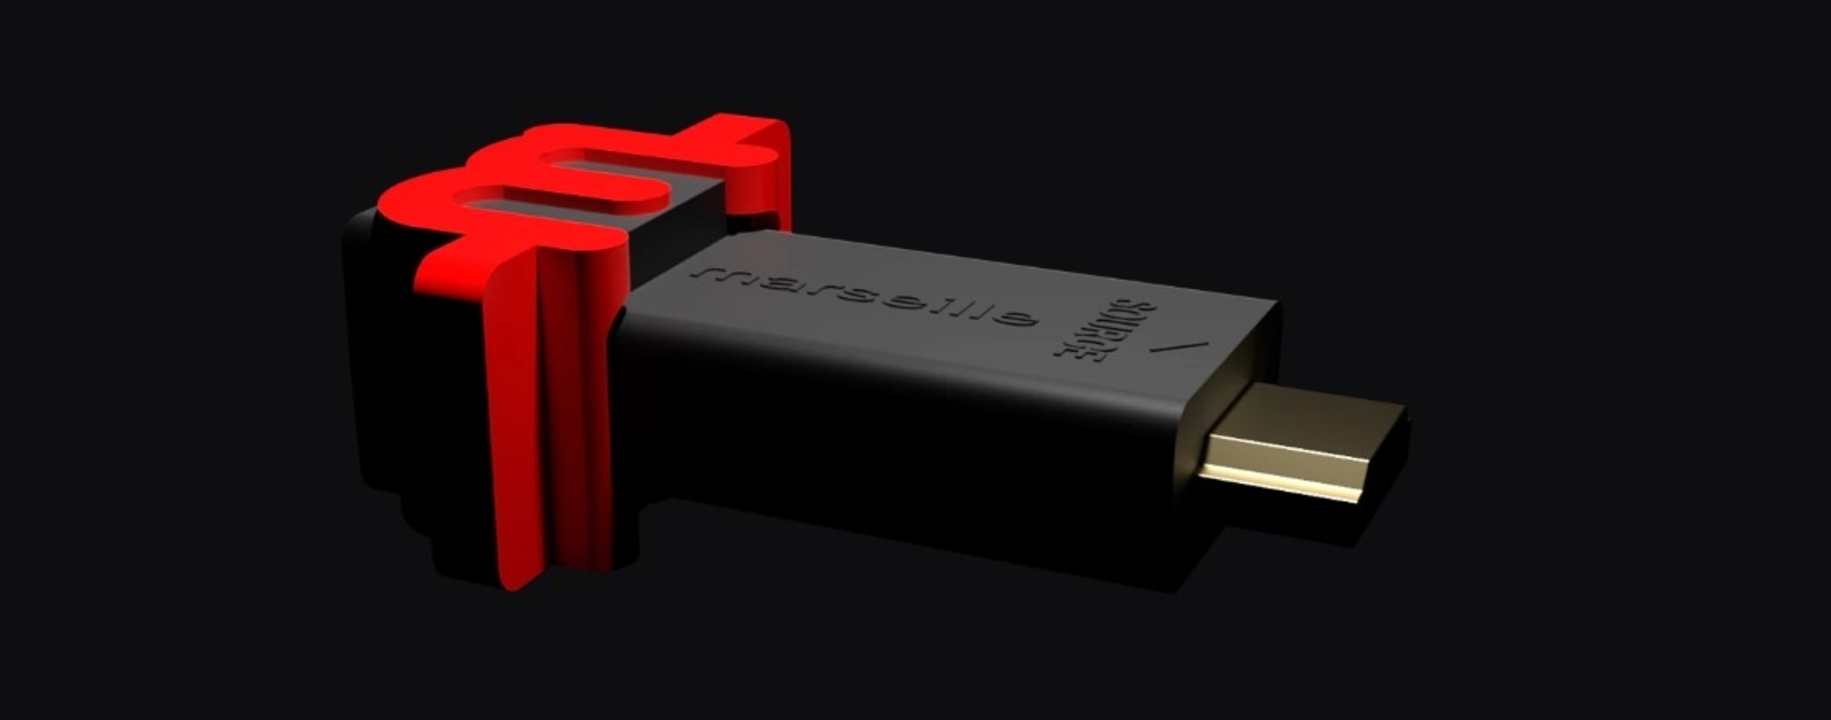 Automatically Enhance Your Video Card With The mclassic External Dongle; No Need To Open Console To Improve The Graphics